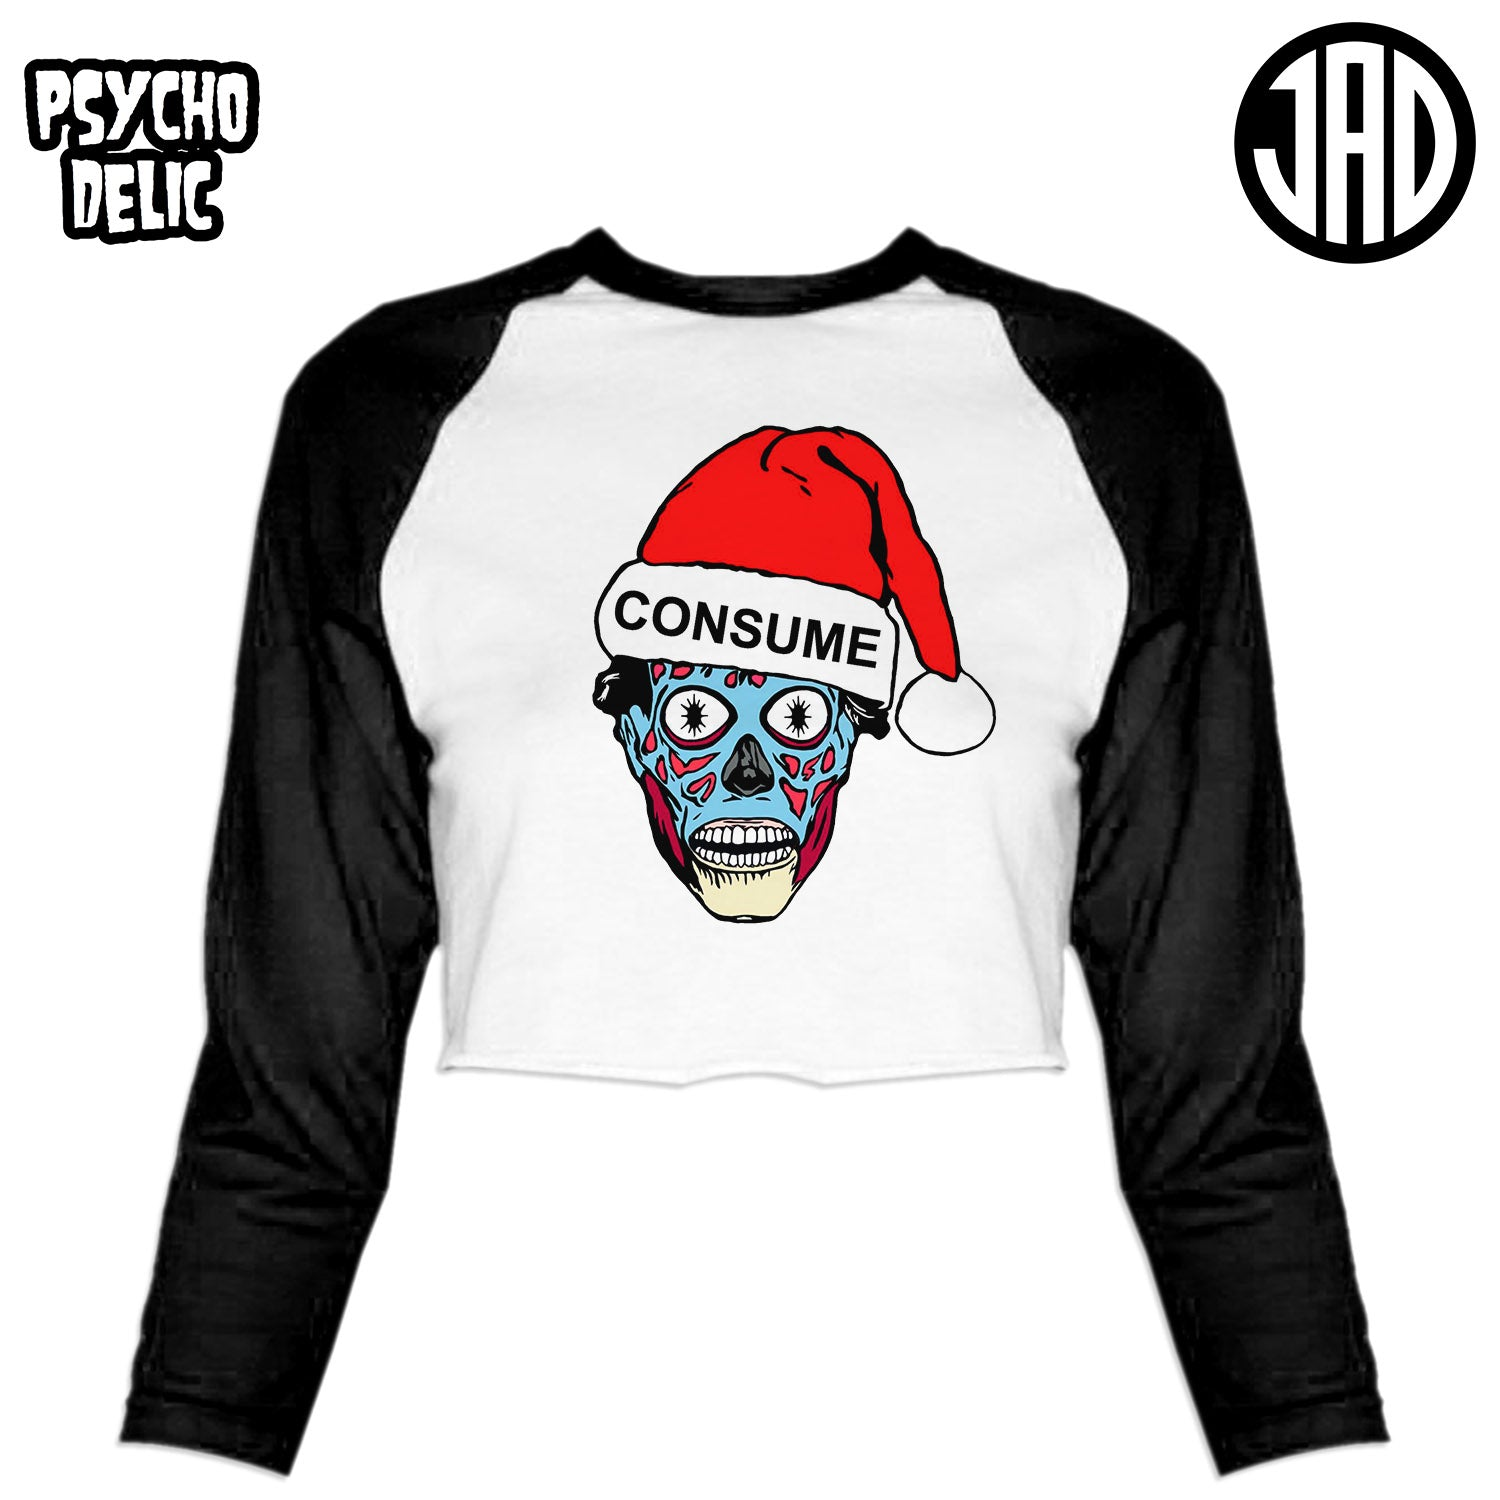 Holiday Consumer - Women's Cropped Baseball Tee